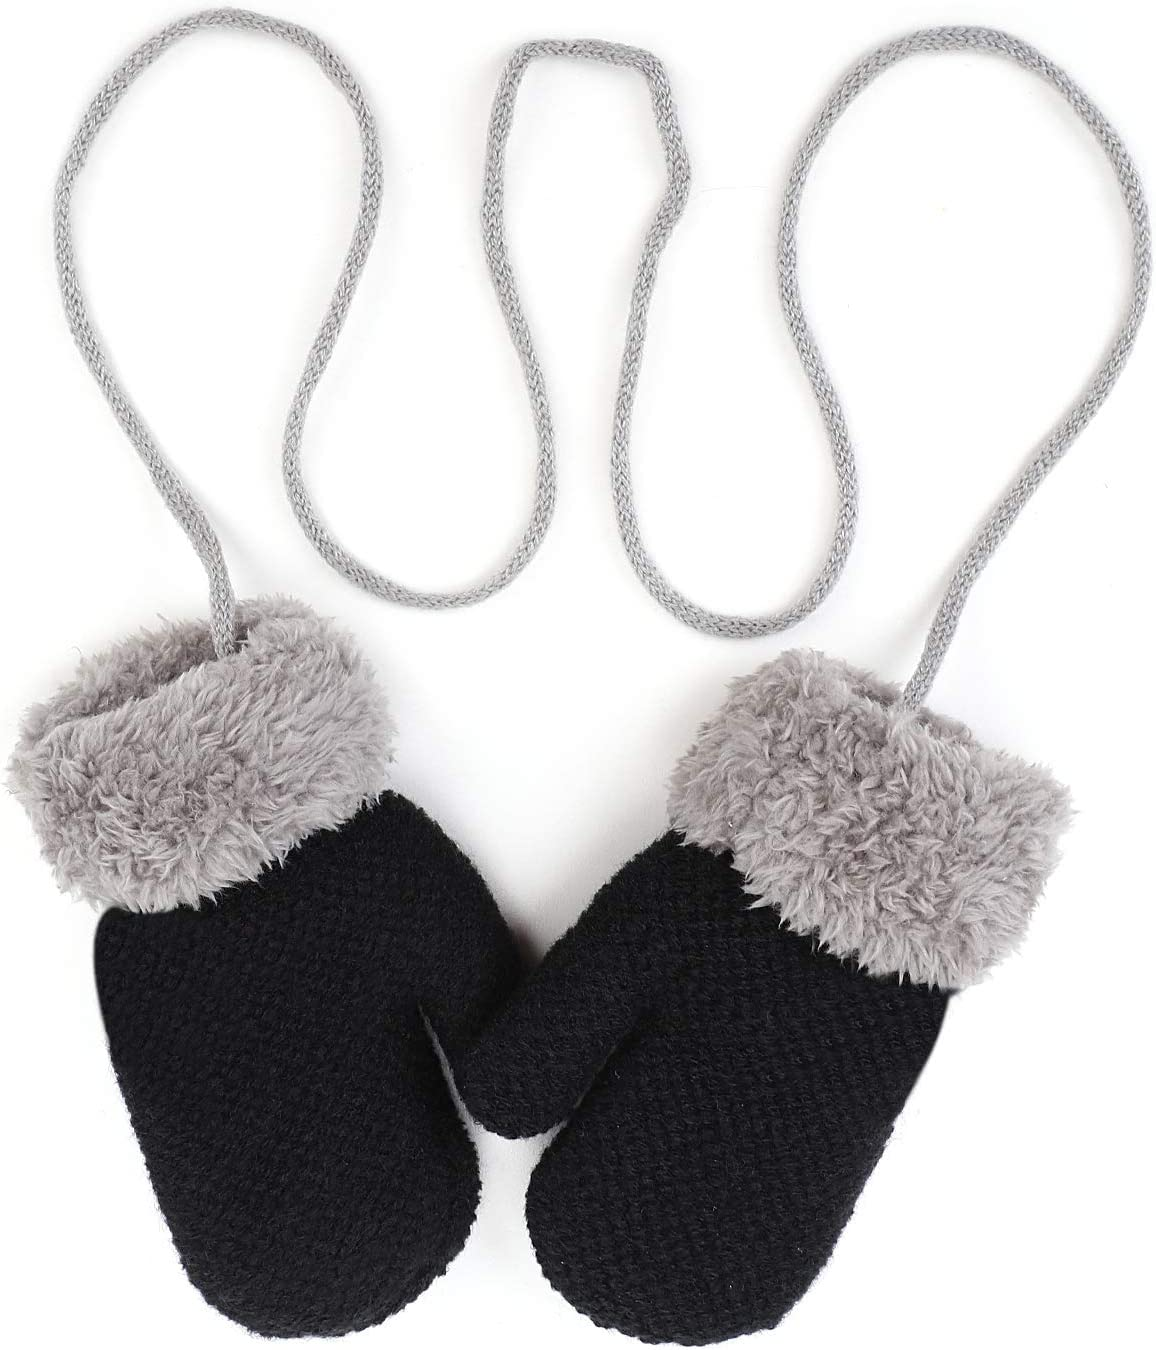 Kids Toddlers Mittens Gloves with String Knitted Mittens Gloves for kids Hang Neck Mittens Girl Boys Full Finger Plush Gloves Winter Warm Wool Fleece Gloves Thick Hand Wear Cover for Children Age 1-5Y